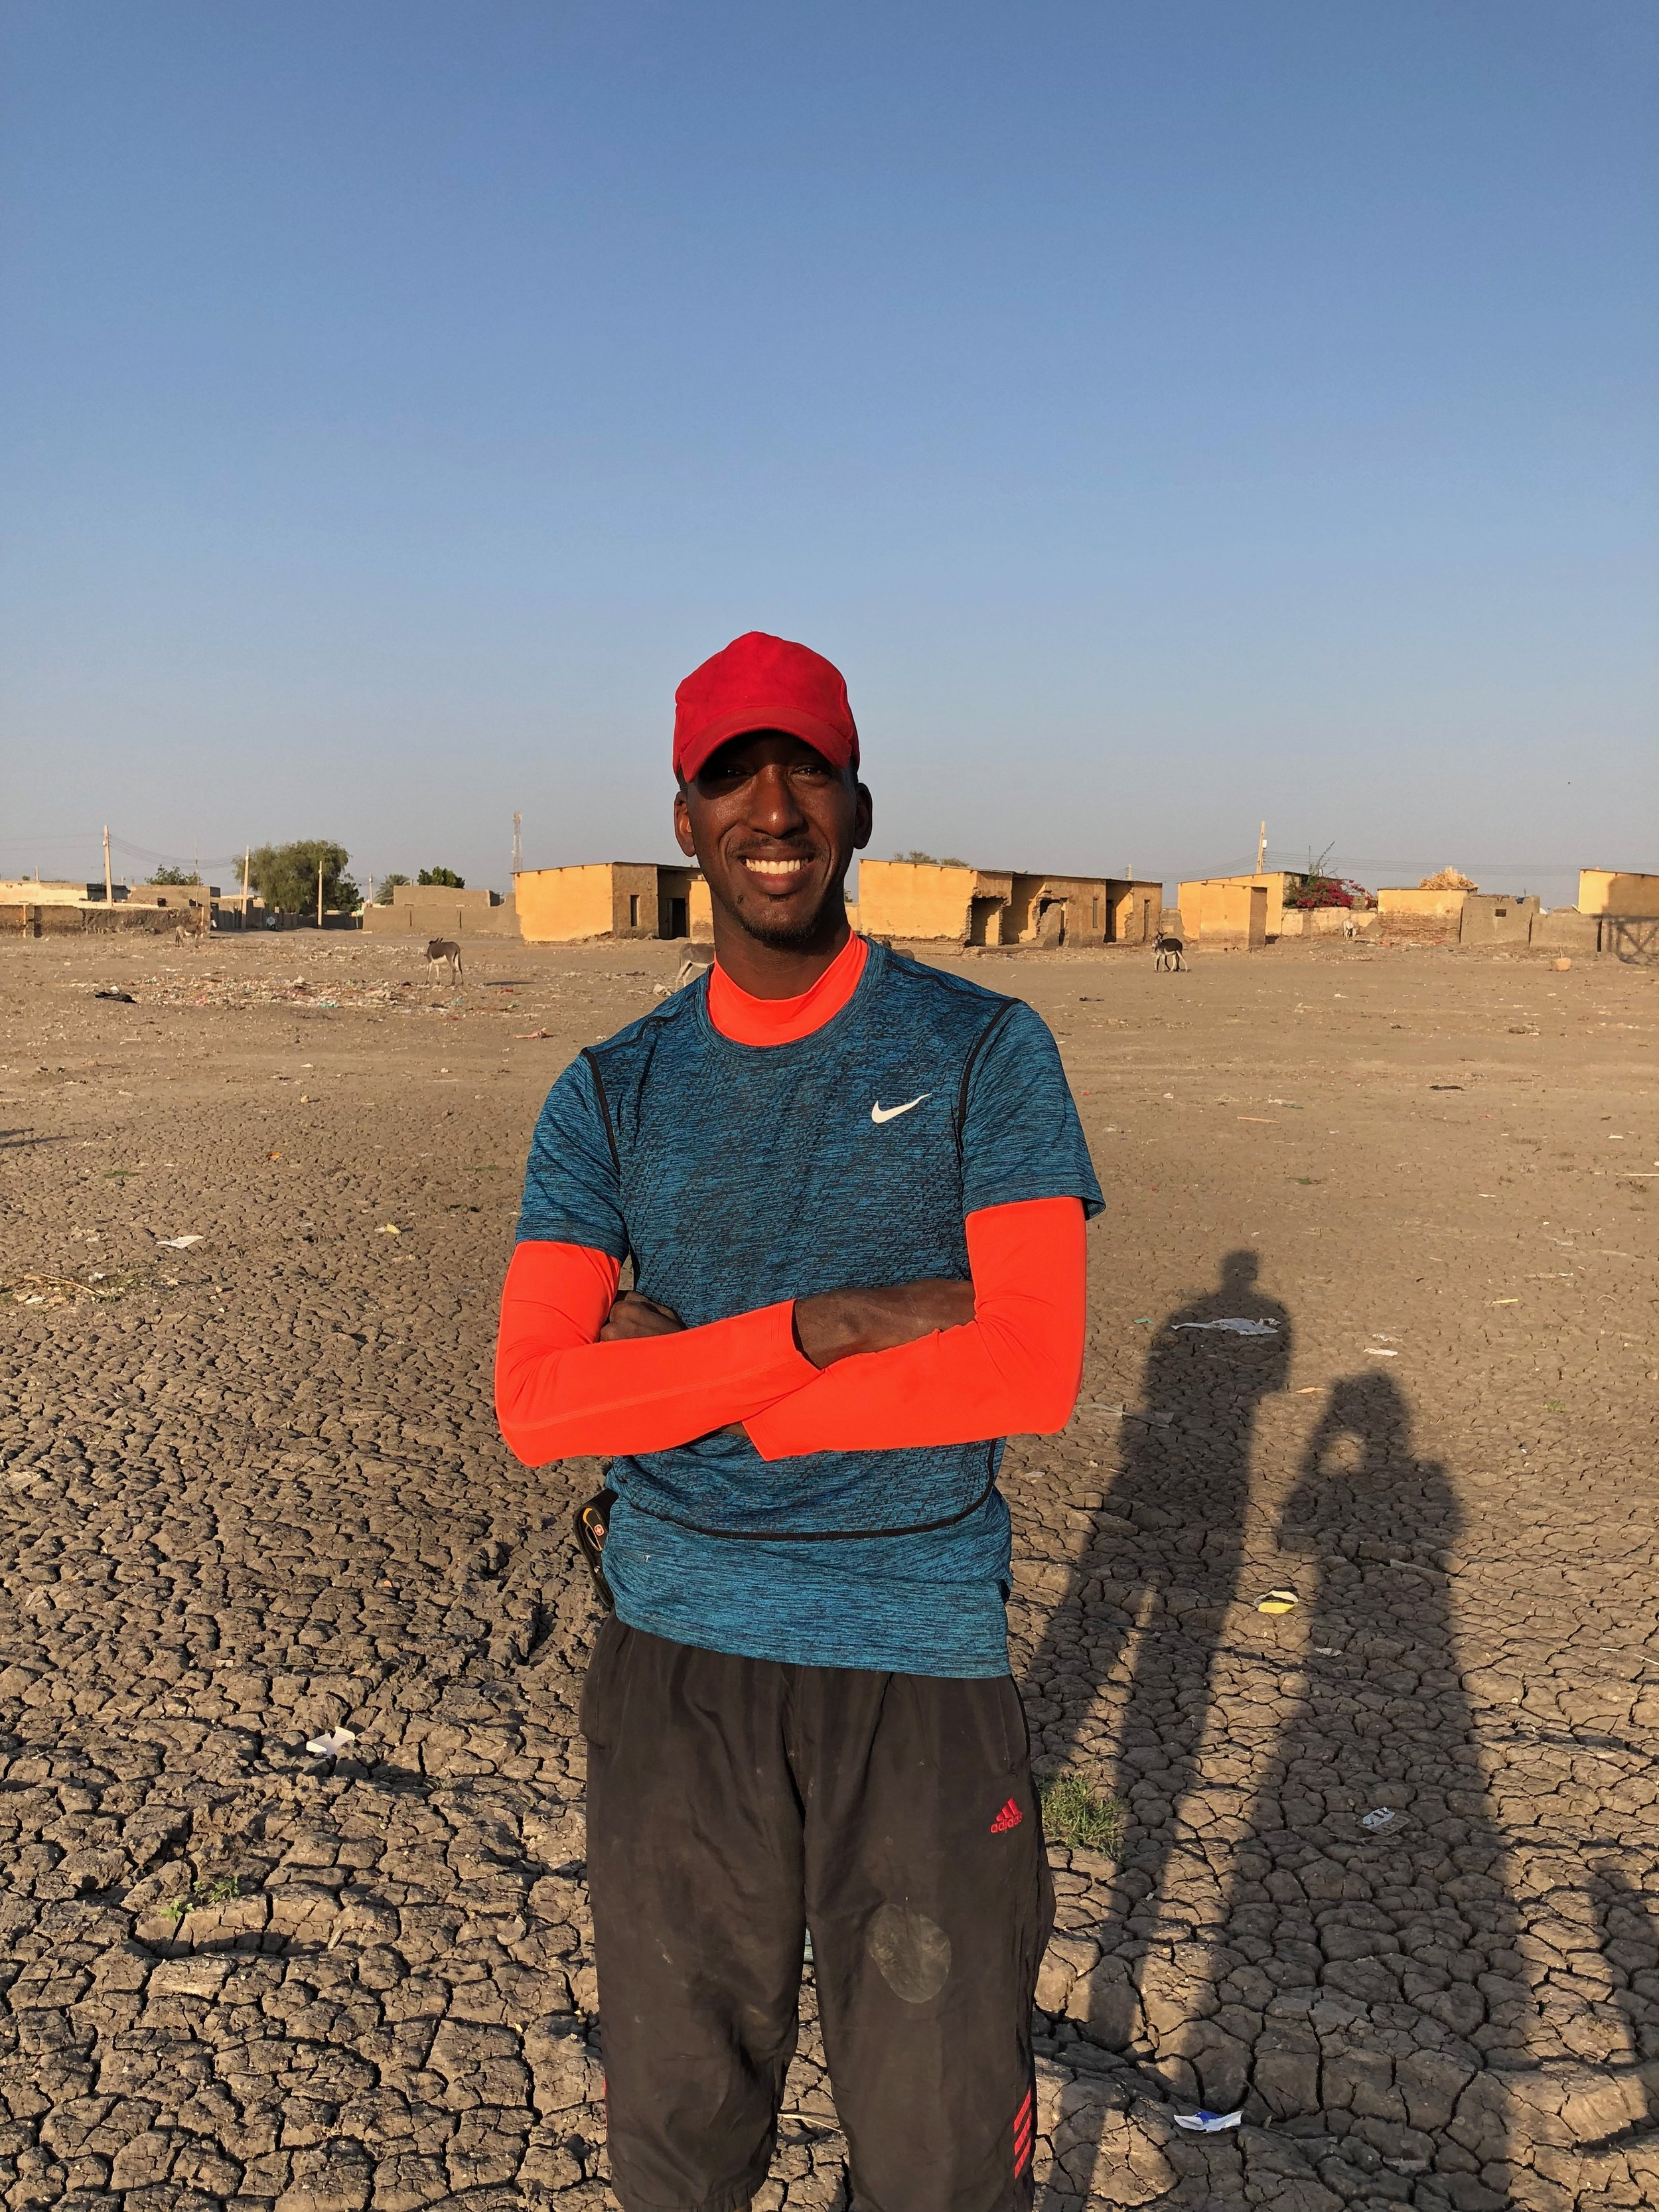 BUSATI  One of Sudan's elite kayakers who kindly agreed to join the first part through Sudan. A kind, funny guy, he tried to teach me some Arabic. He underestimated how terrible I am at learning languages! -